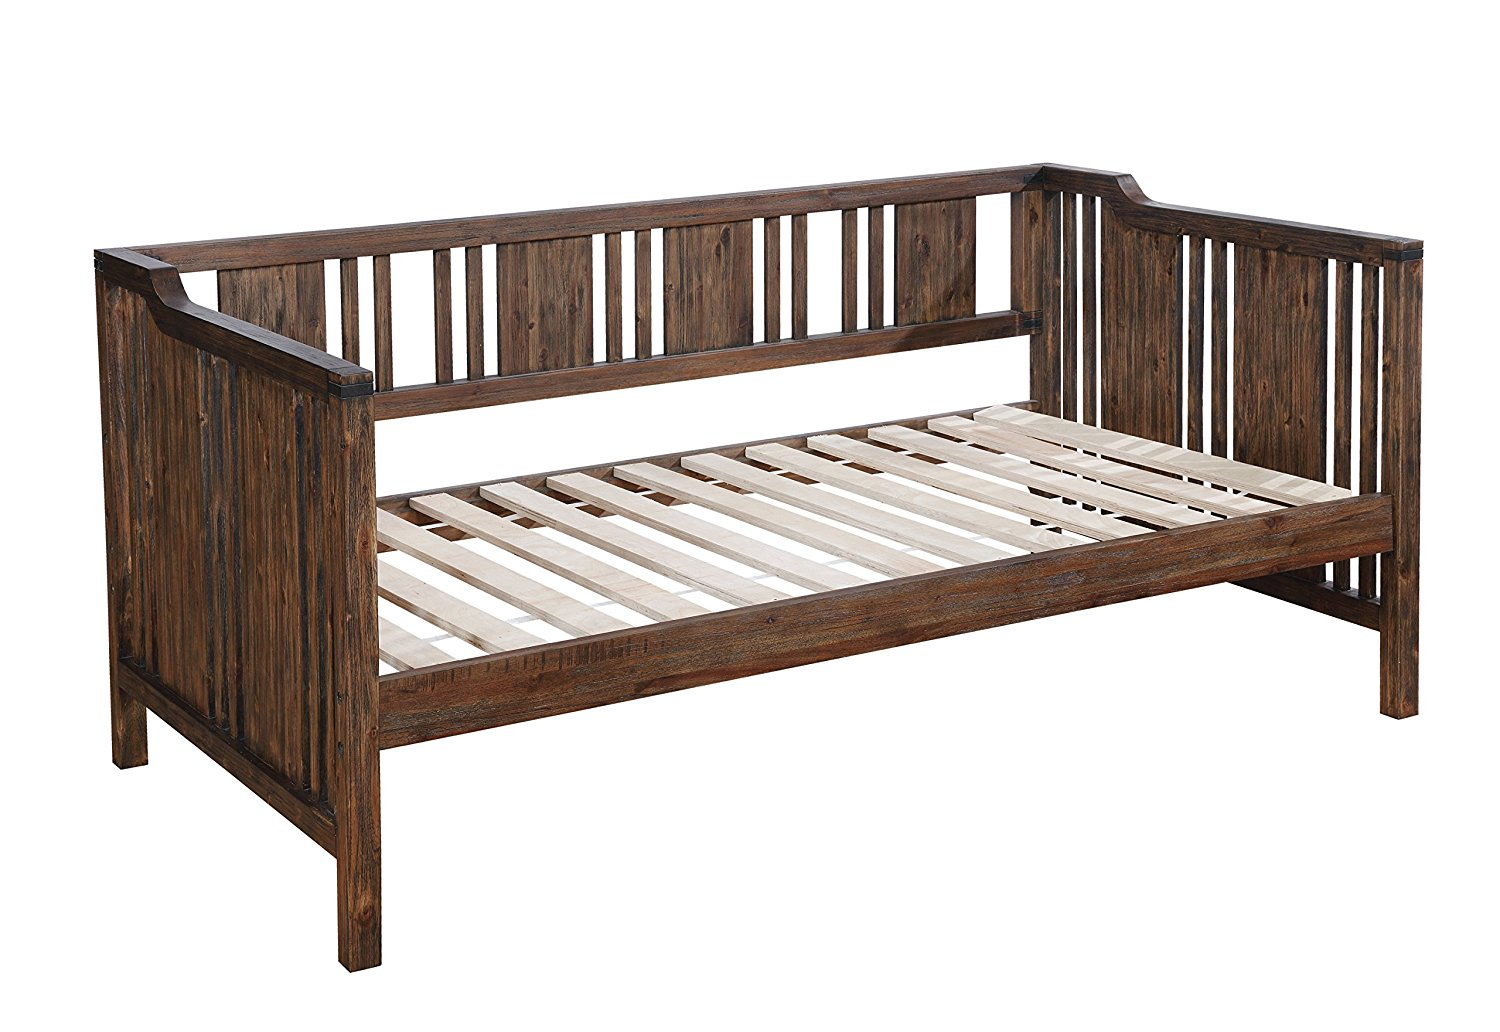 HOMES: Inside + Out Idf-1767 Remus Transitional Daybed, Twin, Dark Walnut